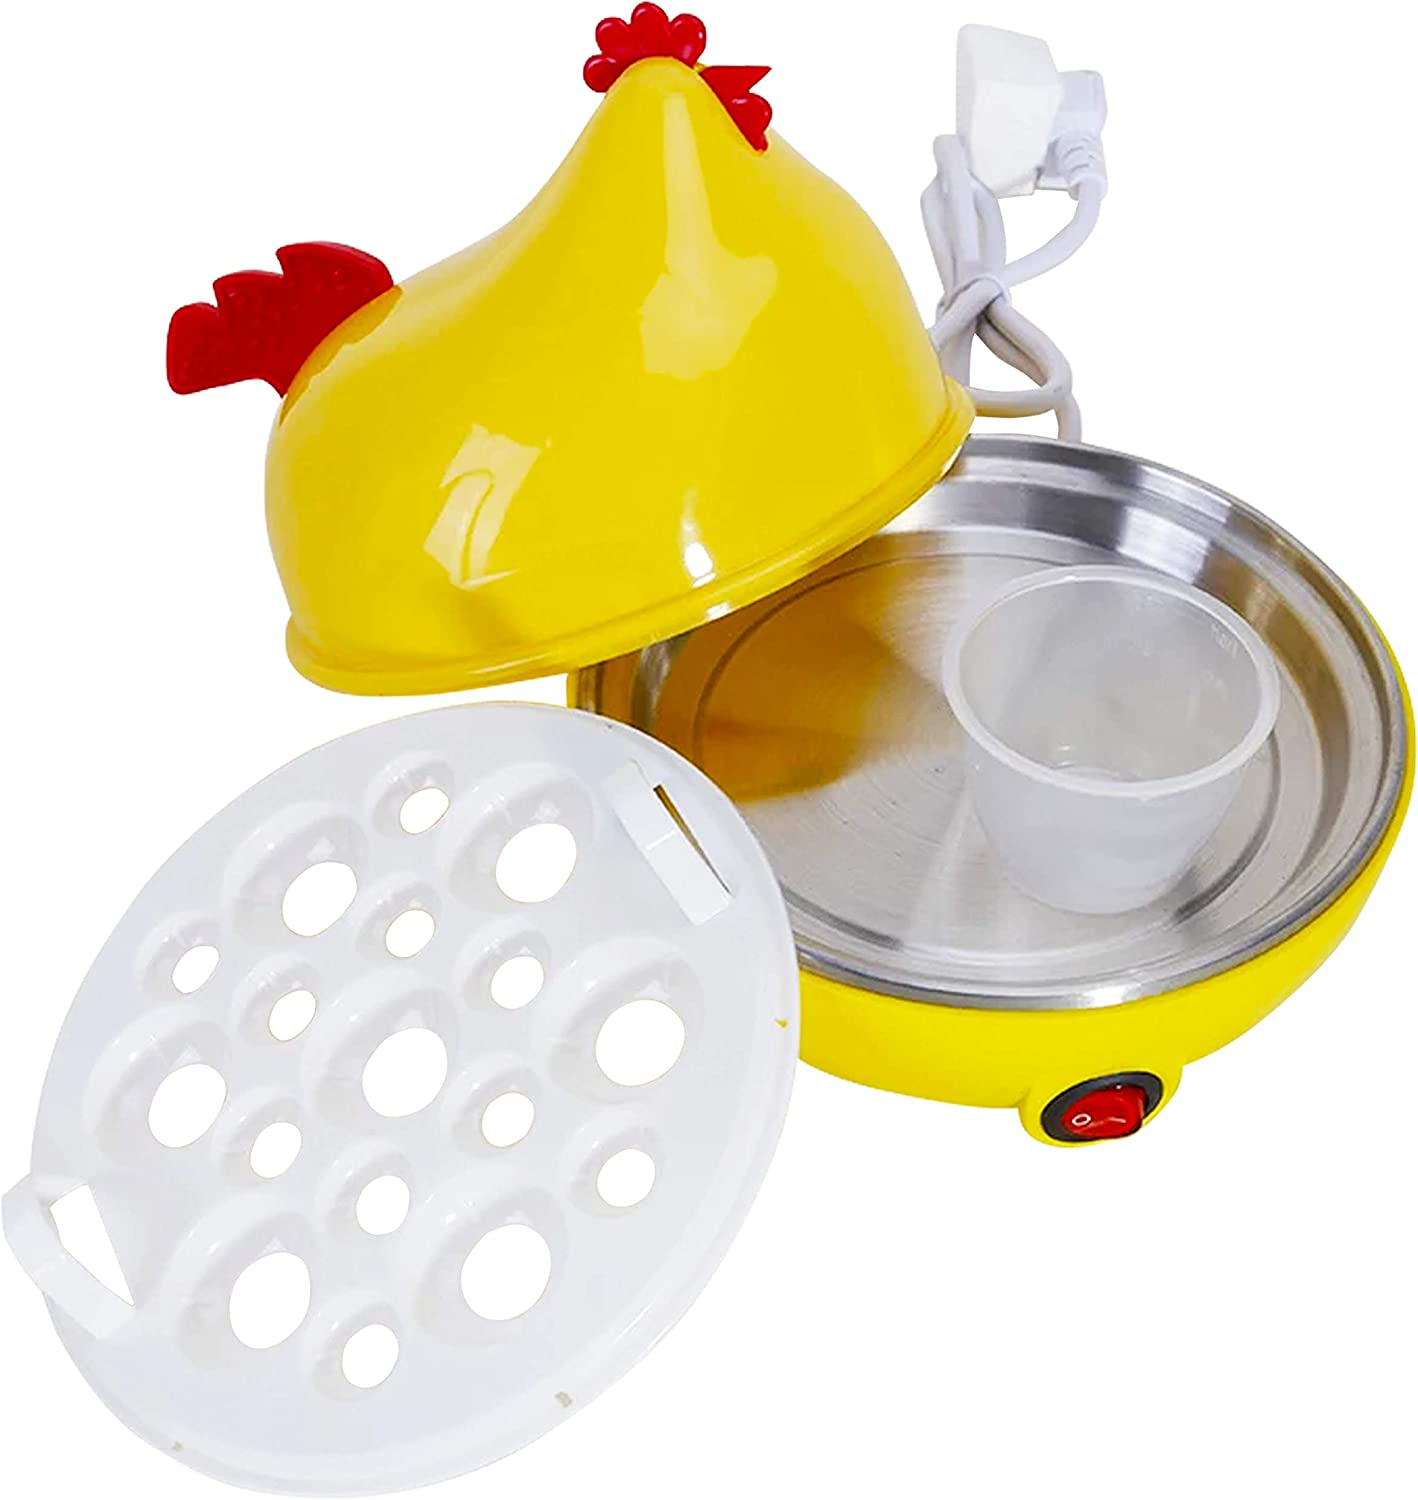 Egg Poacher Electric Rapid Cooker – All-in-One Kitchen Machine for Poached Eggs, Omelette, Hard Boiled & Scrambled Eggs - 7 Egg Capacity with Auto Shut Off Feature, Yellow